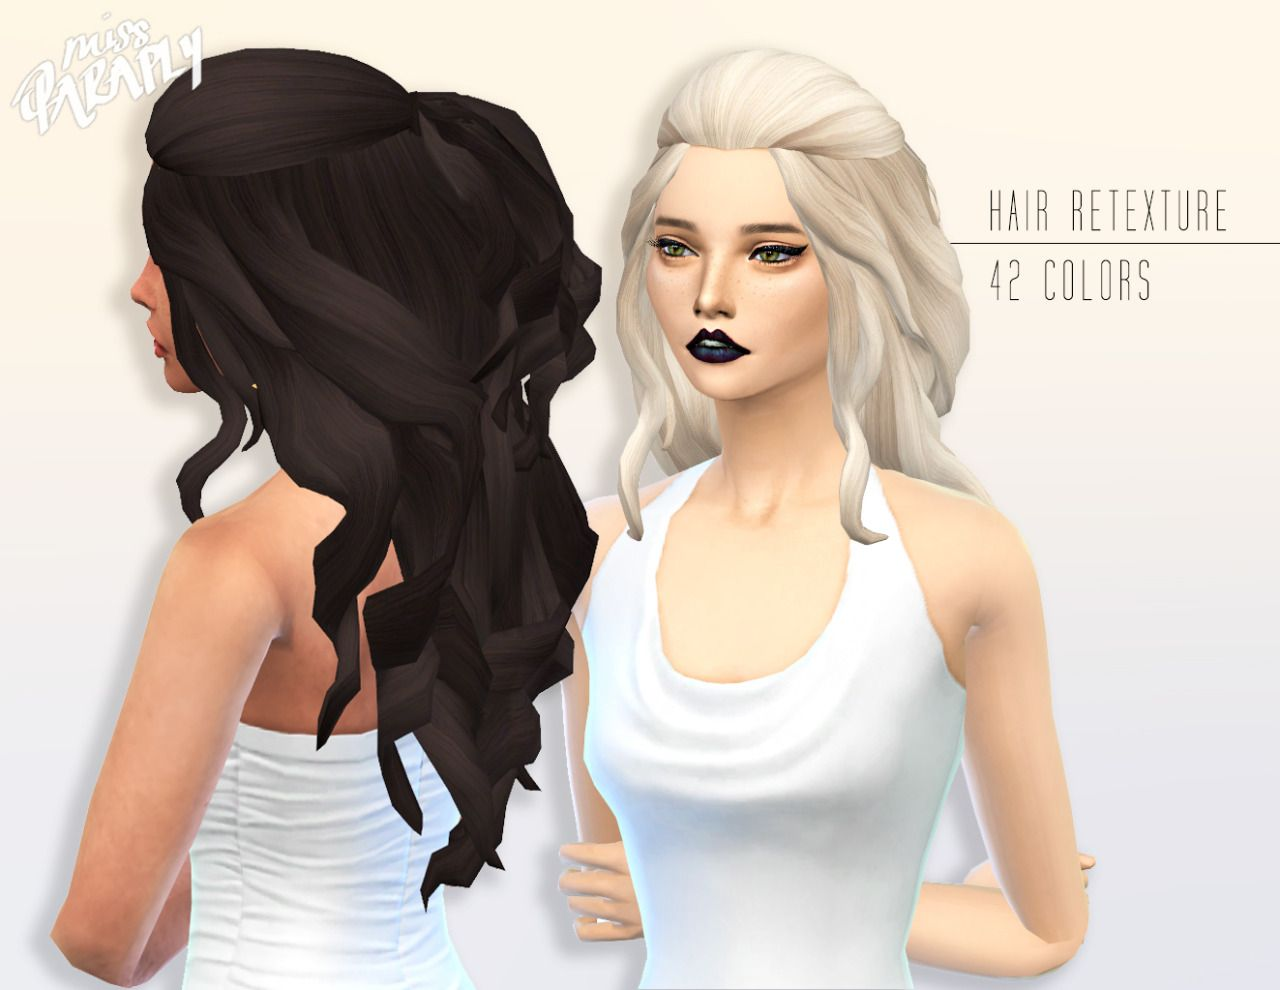 The sims 4 hairstyles cc - Miss Paraply Kiara 24 Romantic Hairstyle Sims 4 Hairs Http